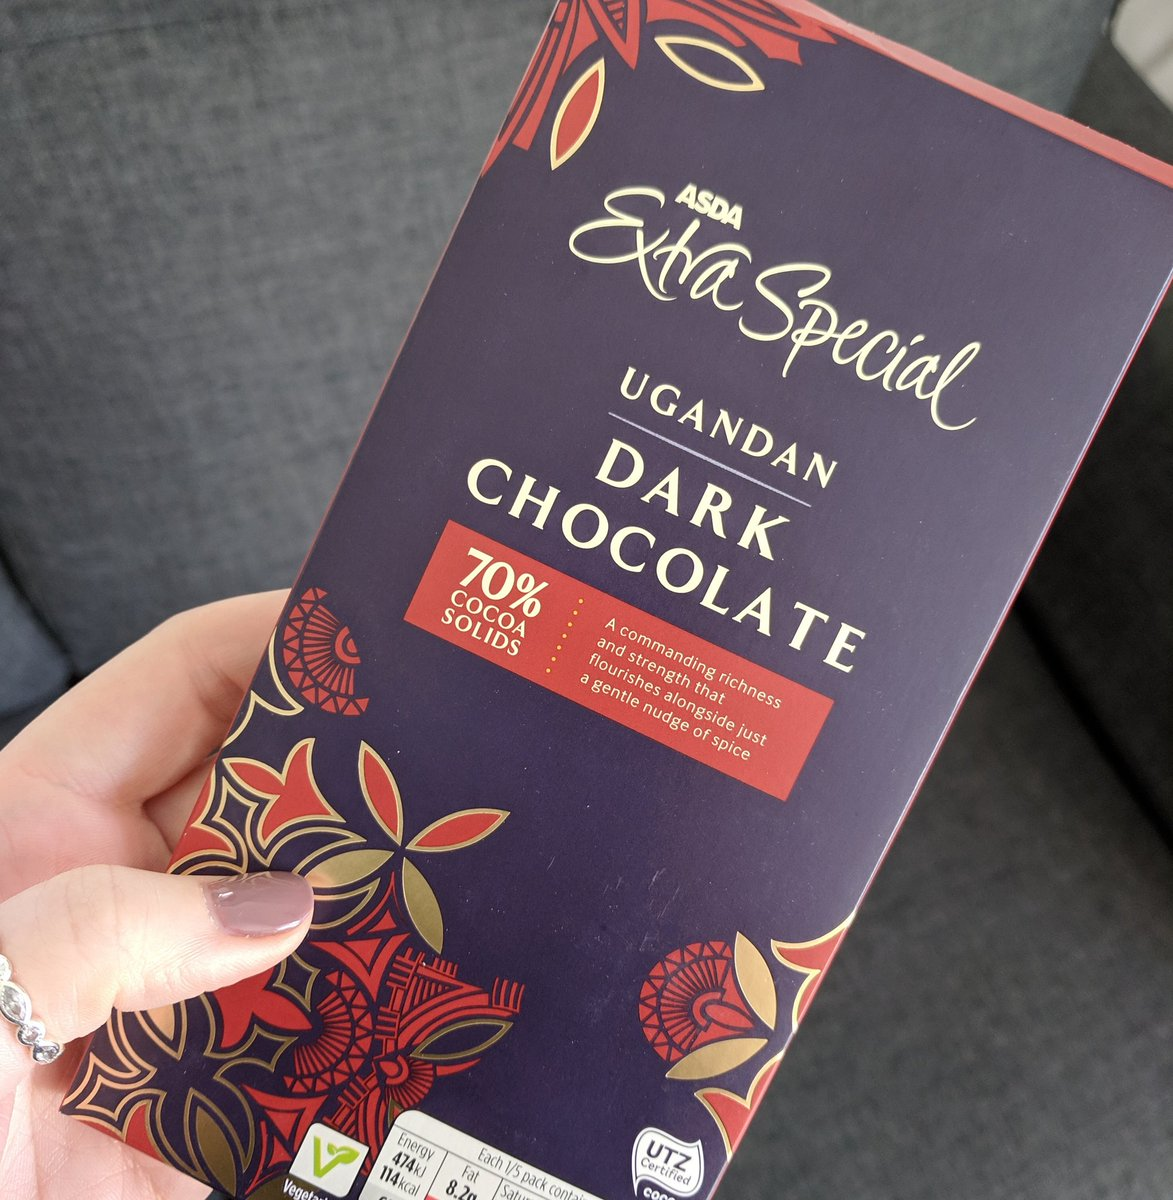 Honeypot Blogs On Twitter This At Asda Chocolate Is By Far